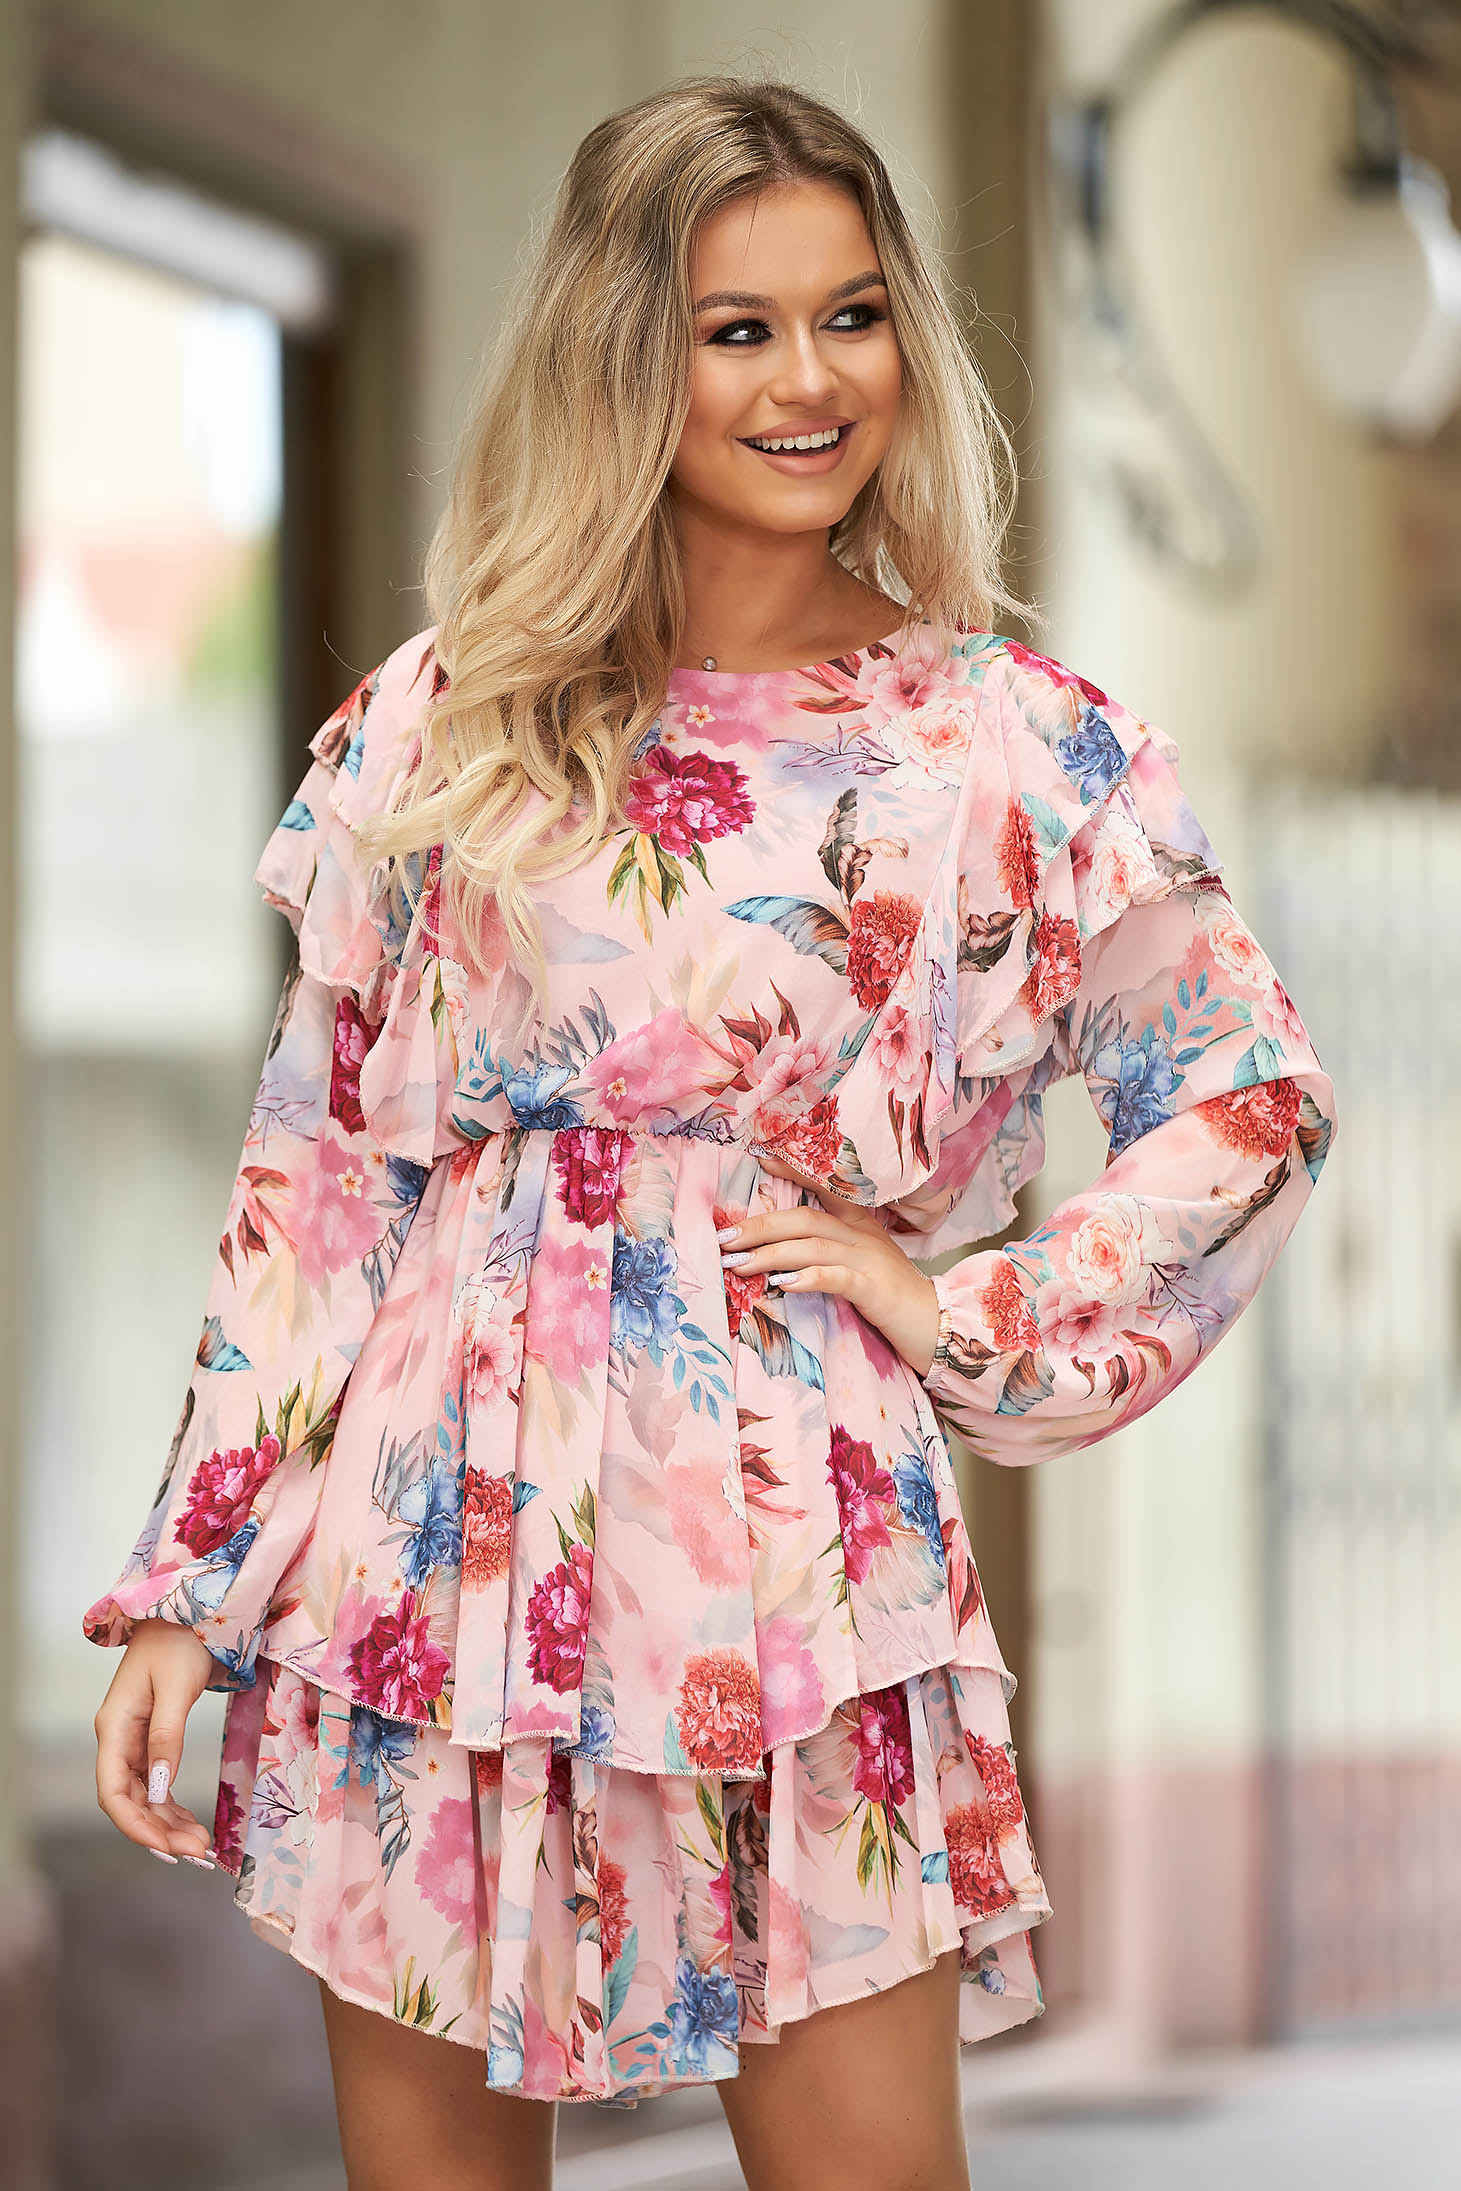 Pink dress short cut daily from veil fabric with ruffle details long sleeved